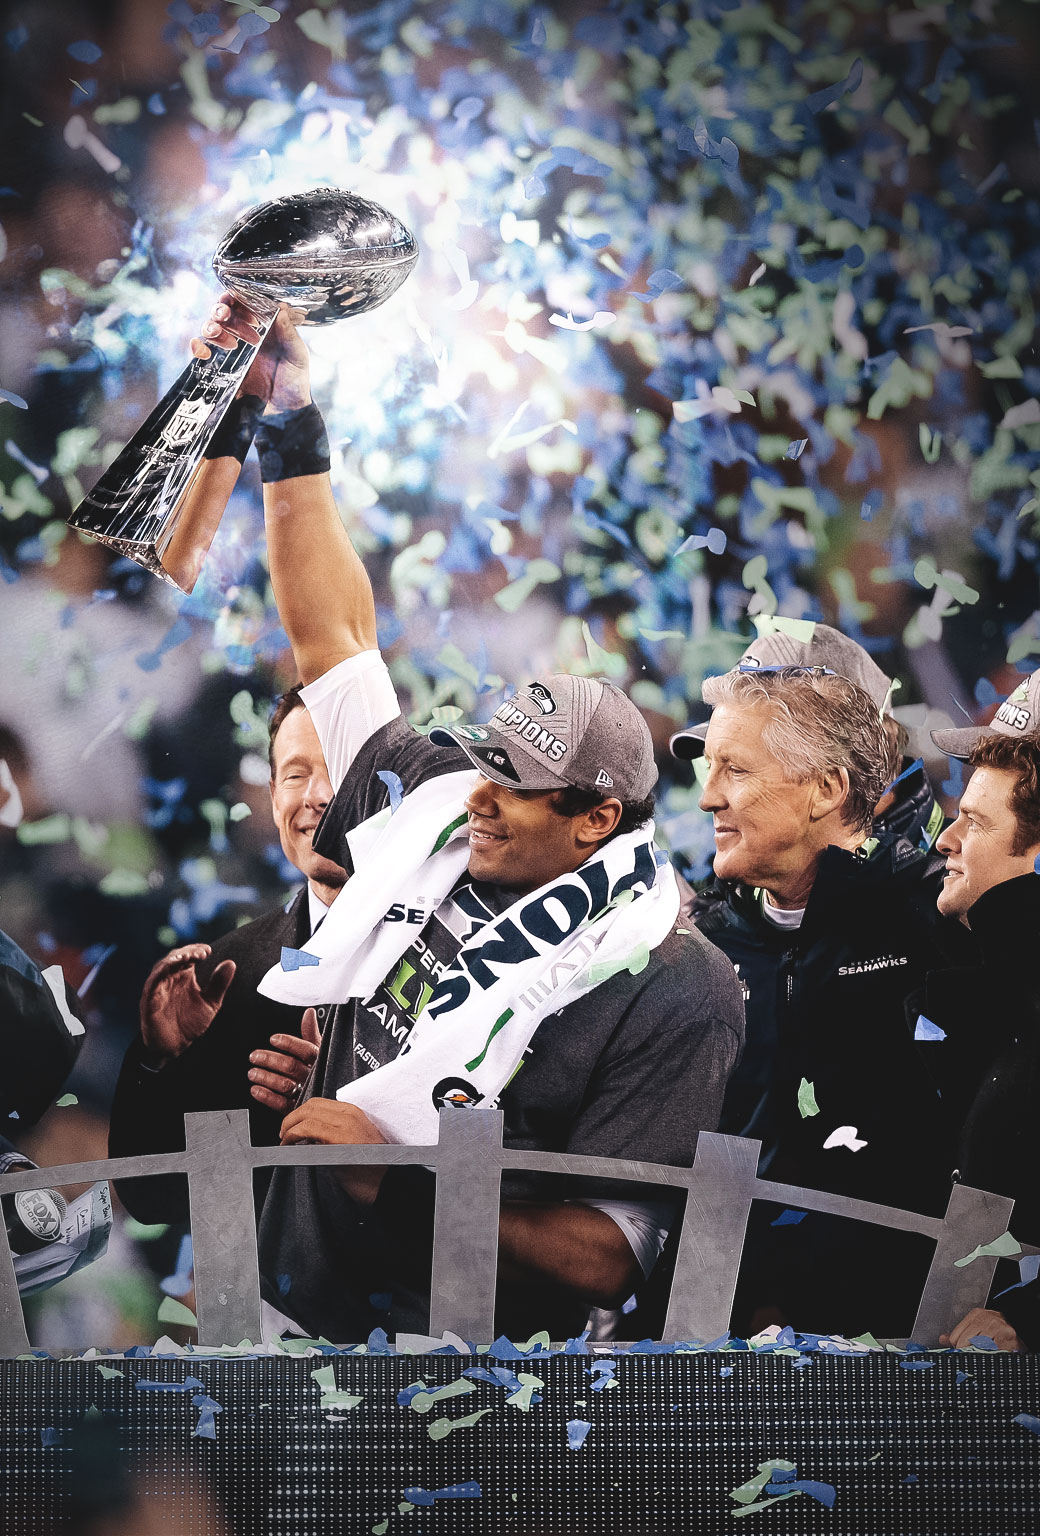 Seattle Seahawks Wallpaper Seattle Seahawks Seahawkscom 1040x1536